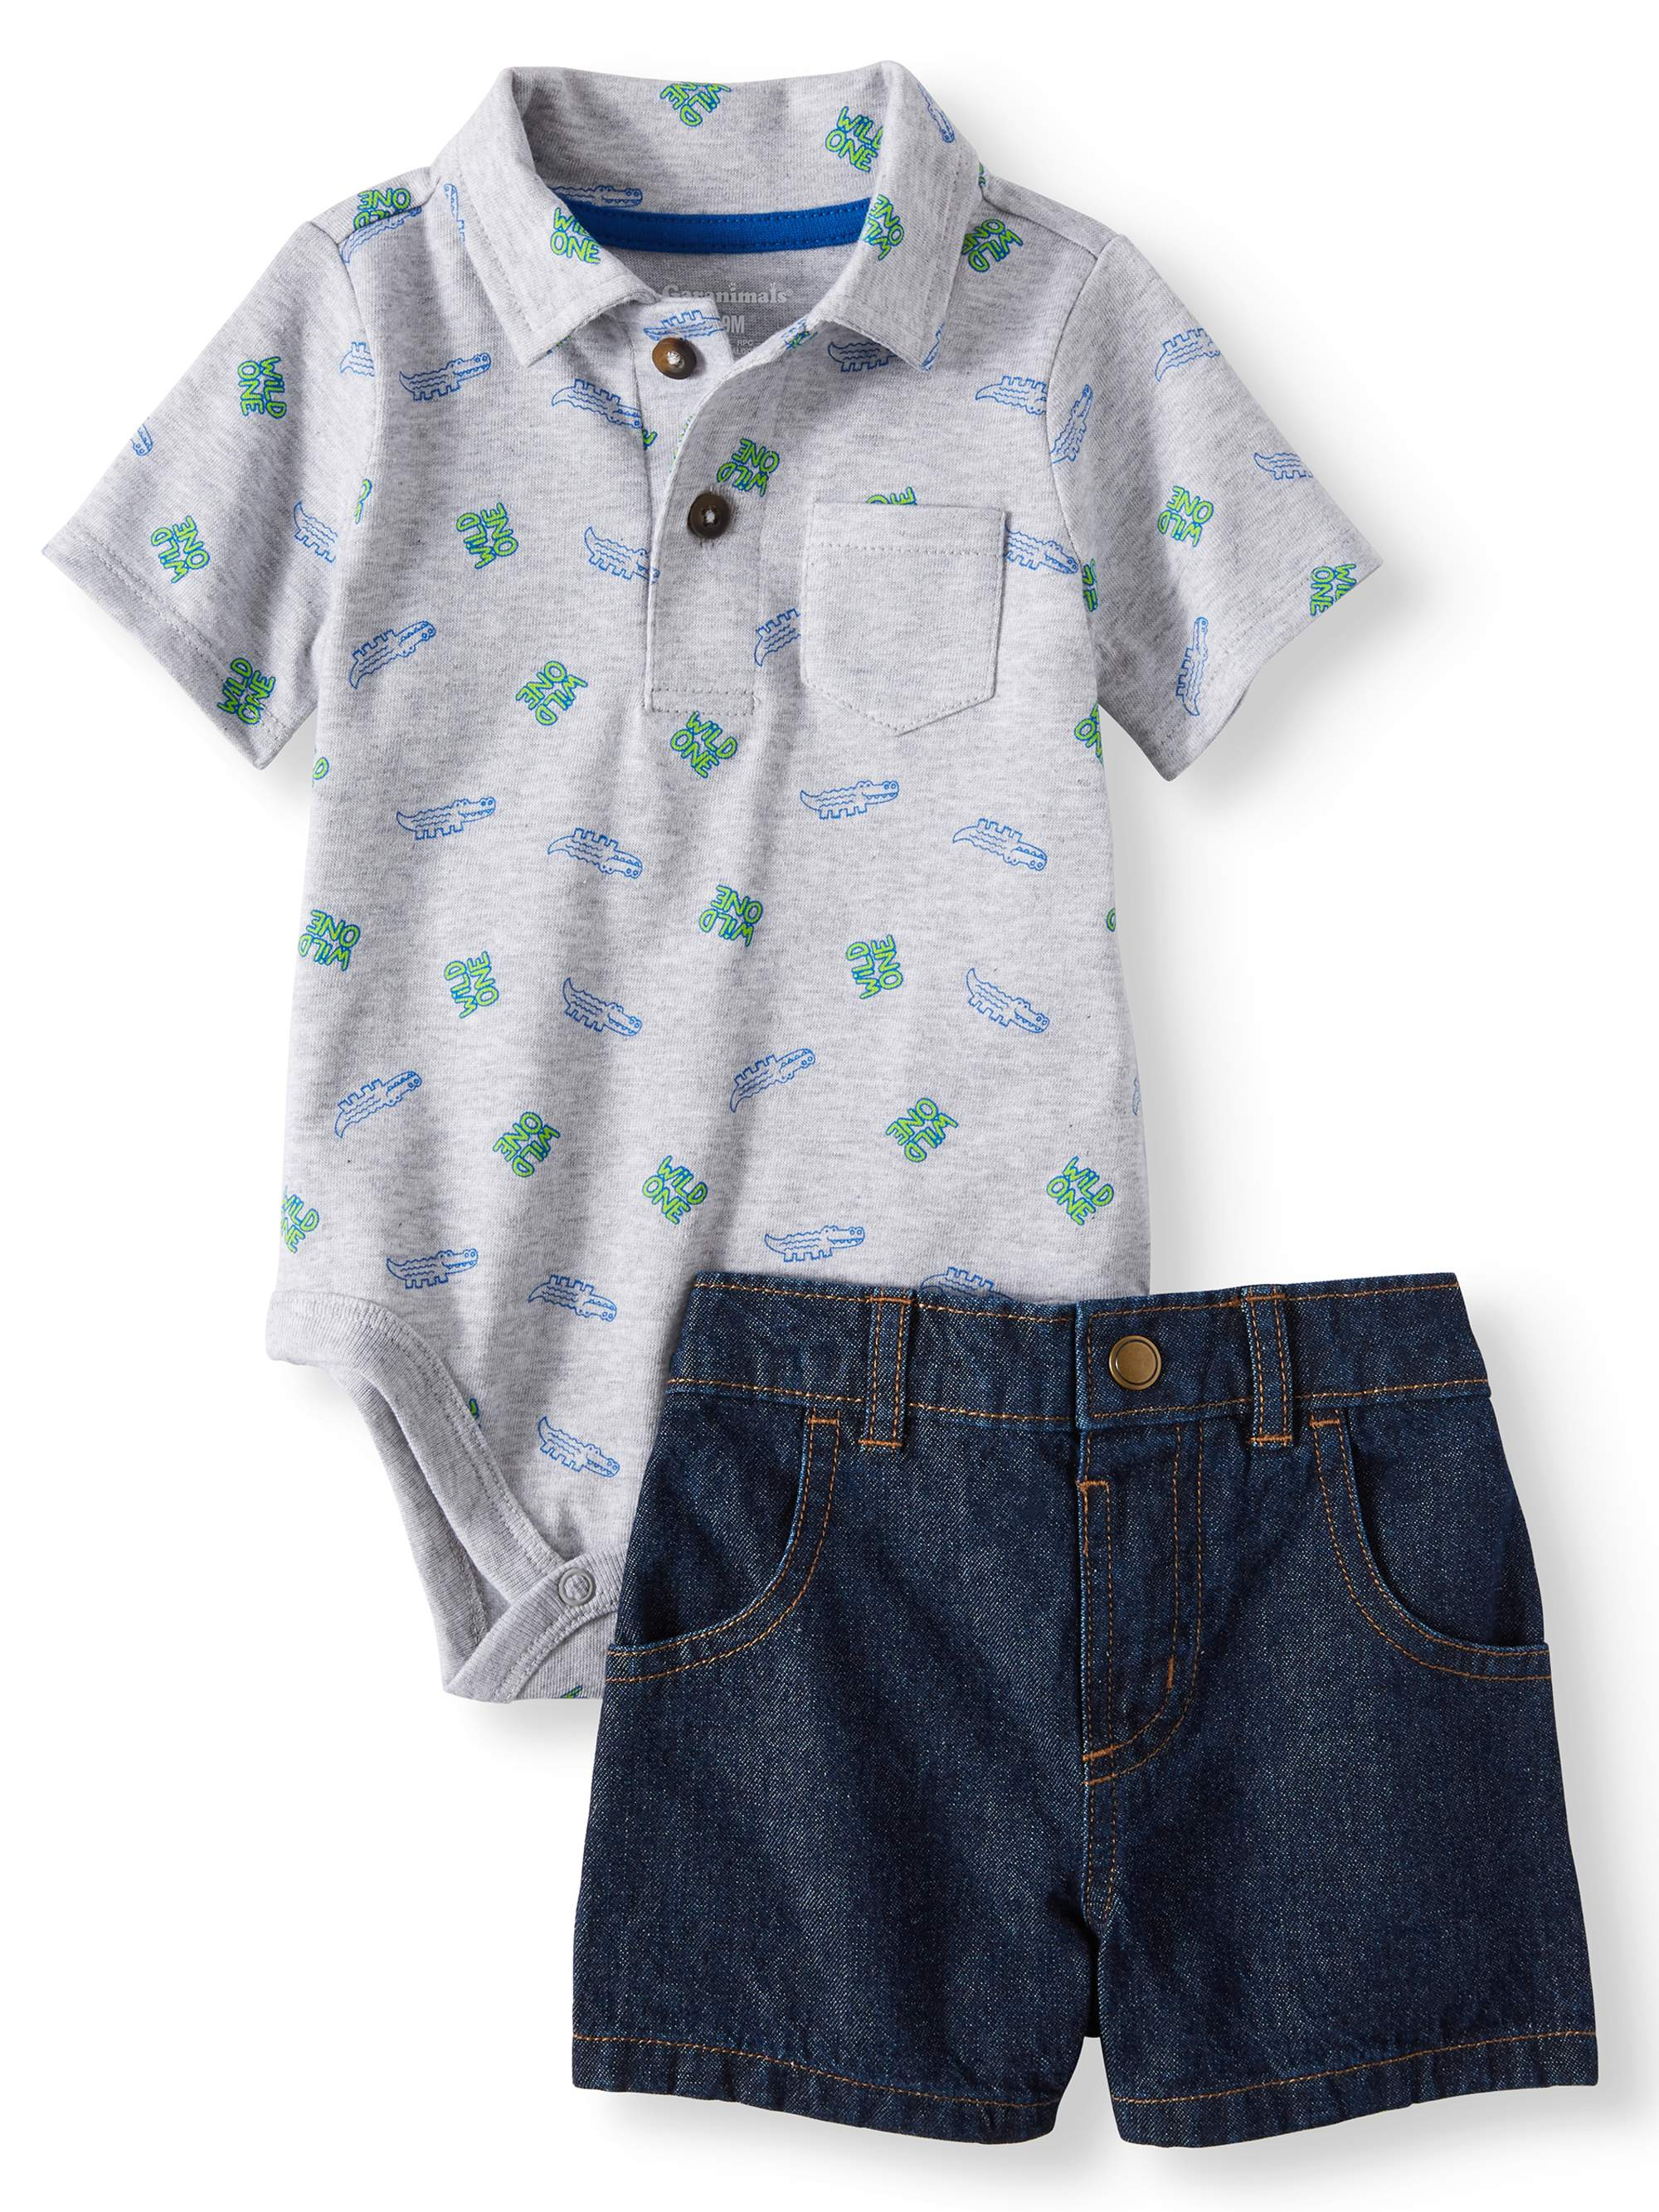 Baby Boys' Print Polo Bodysuit and Canvas or Denim Shorts, 2-Piece Outfit Set